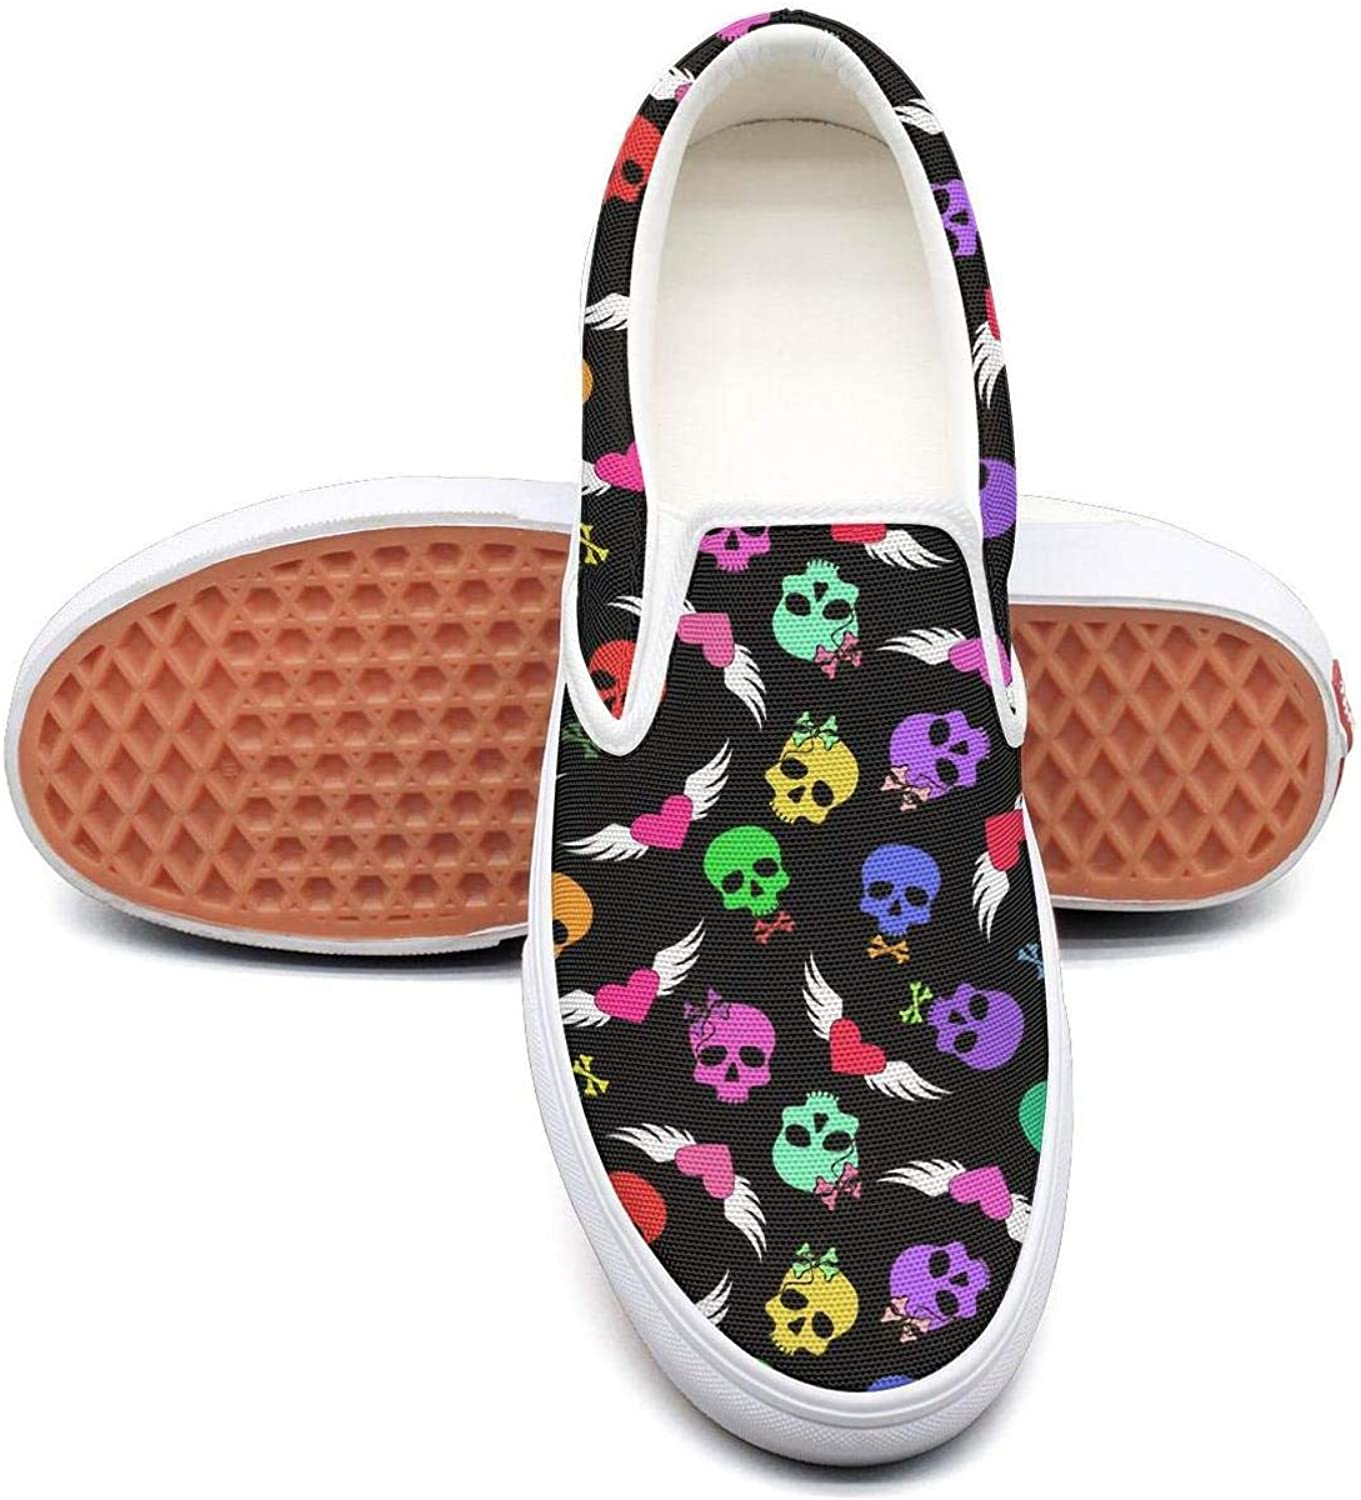 colorful Mexican Skull Pirate Skull Slip On Superior Comfort Sneakers Canvas shoes for Women Fashion